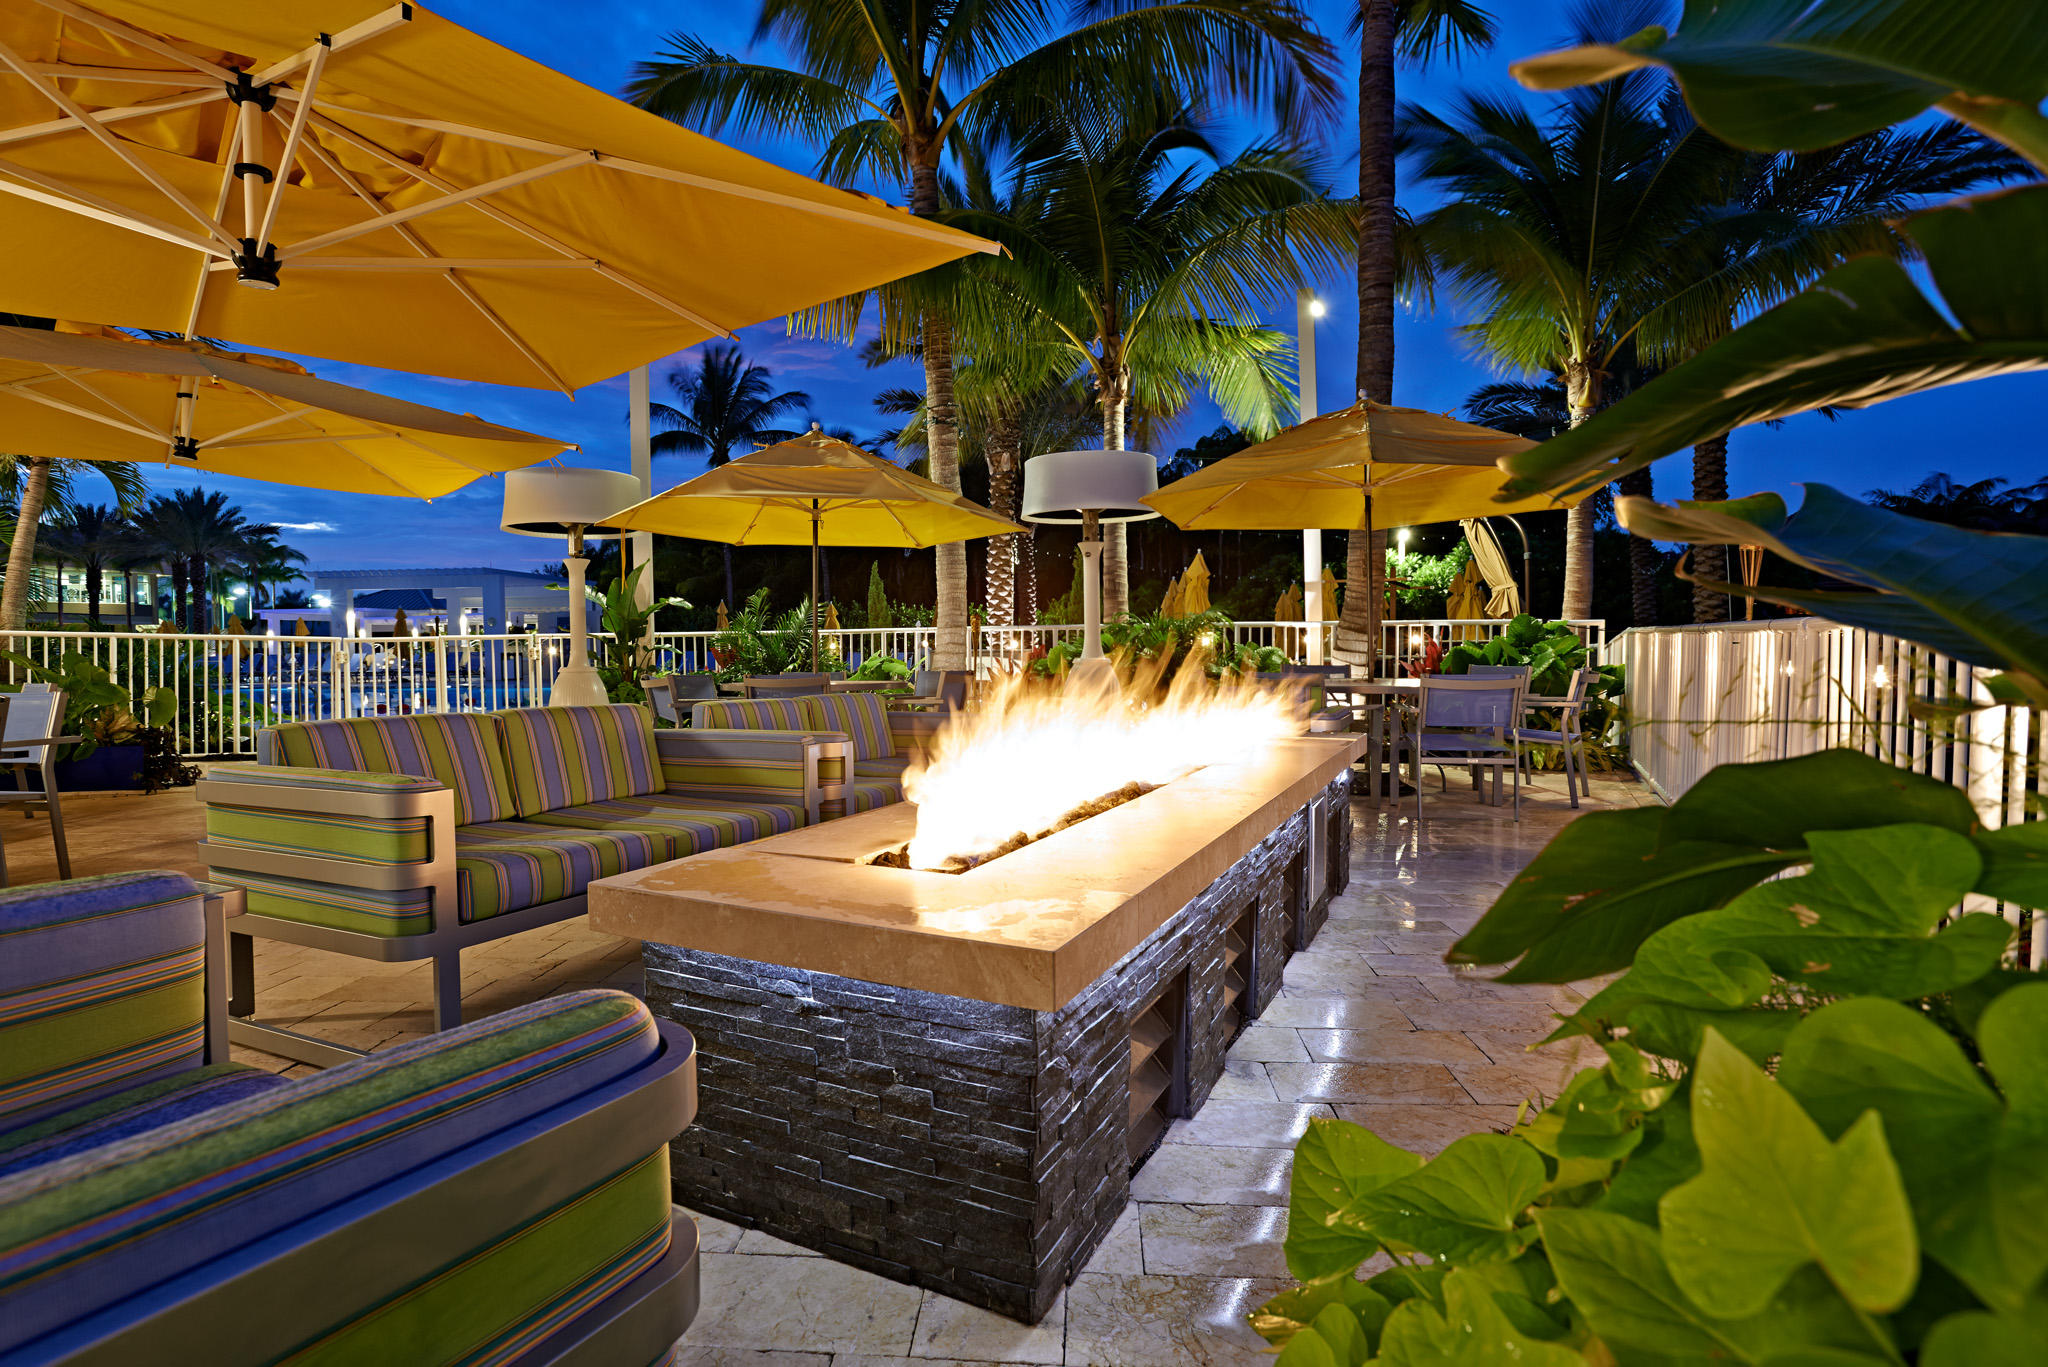 St Andrews Lakeside Fire Pit